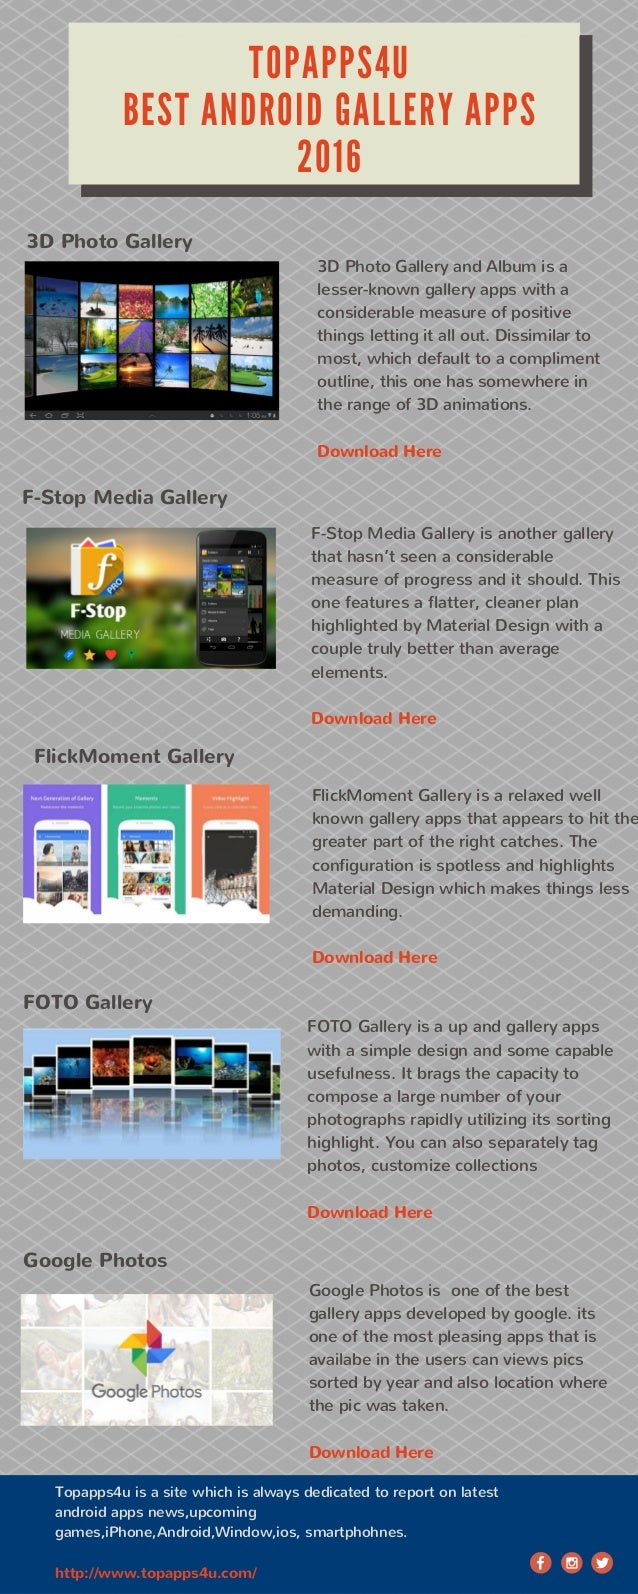 Best Android Gallery Apps 2016